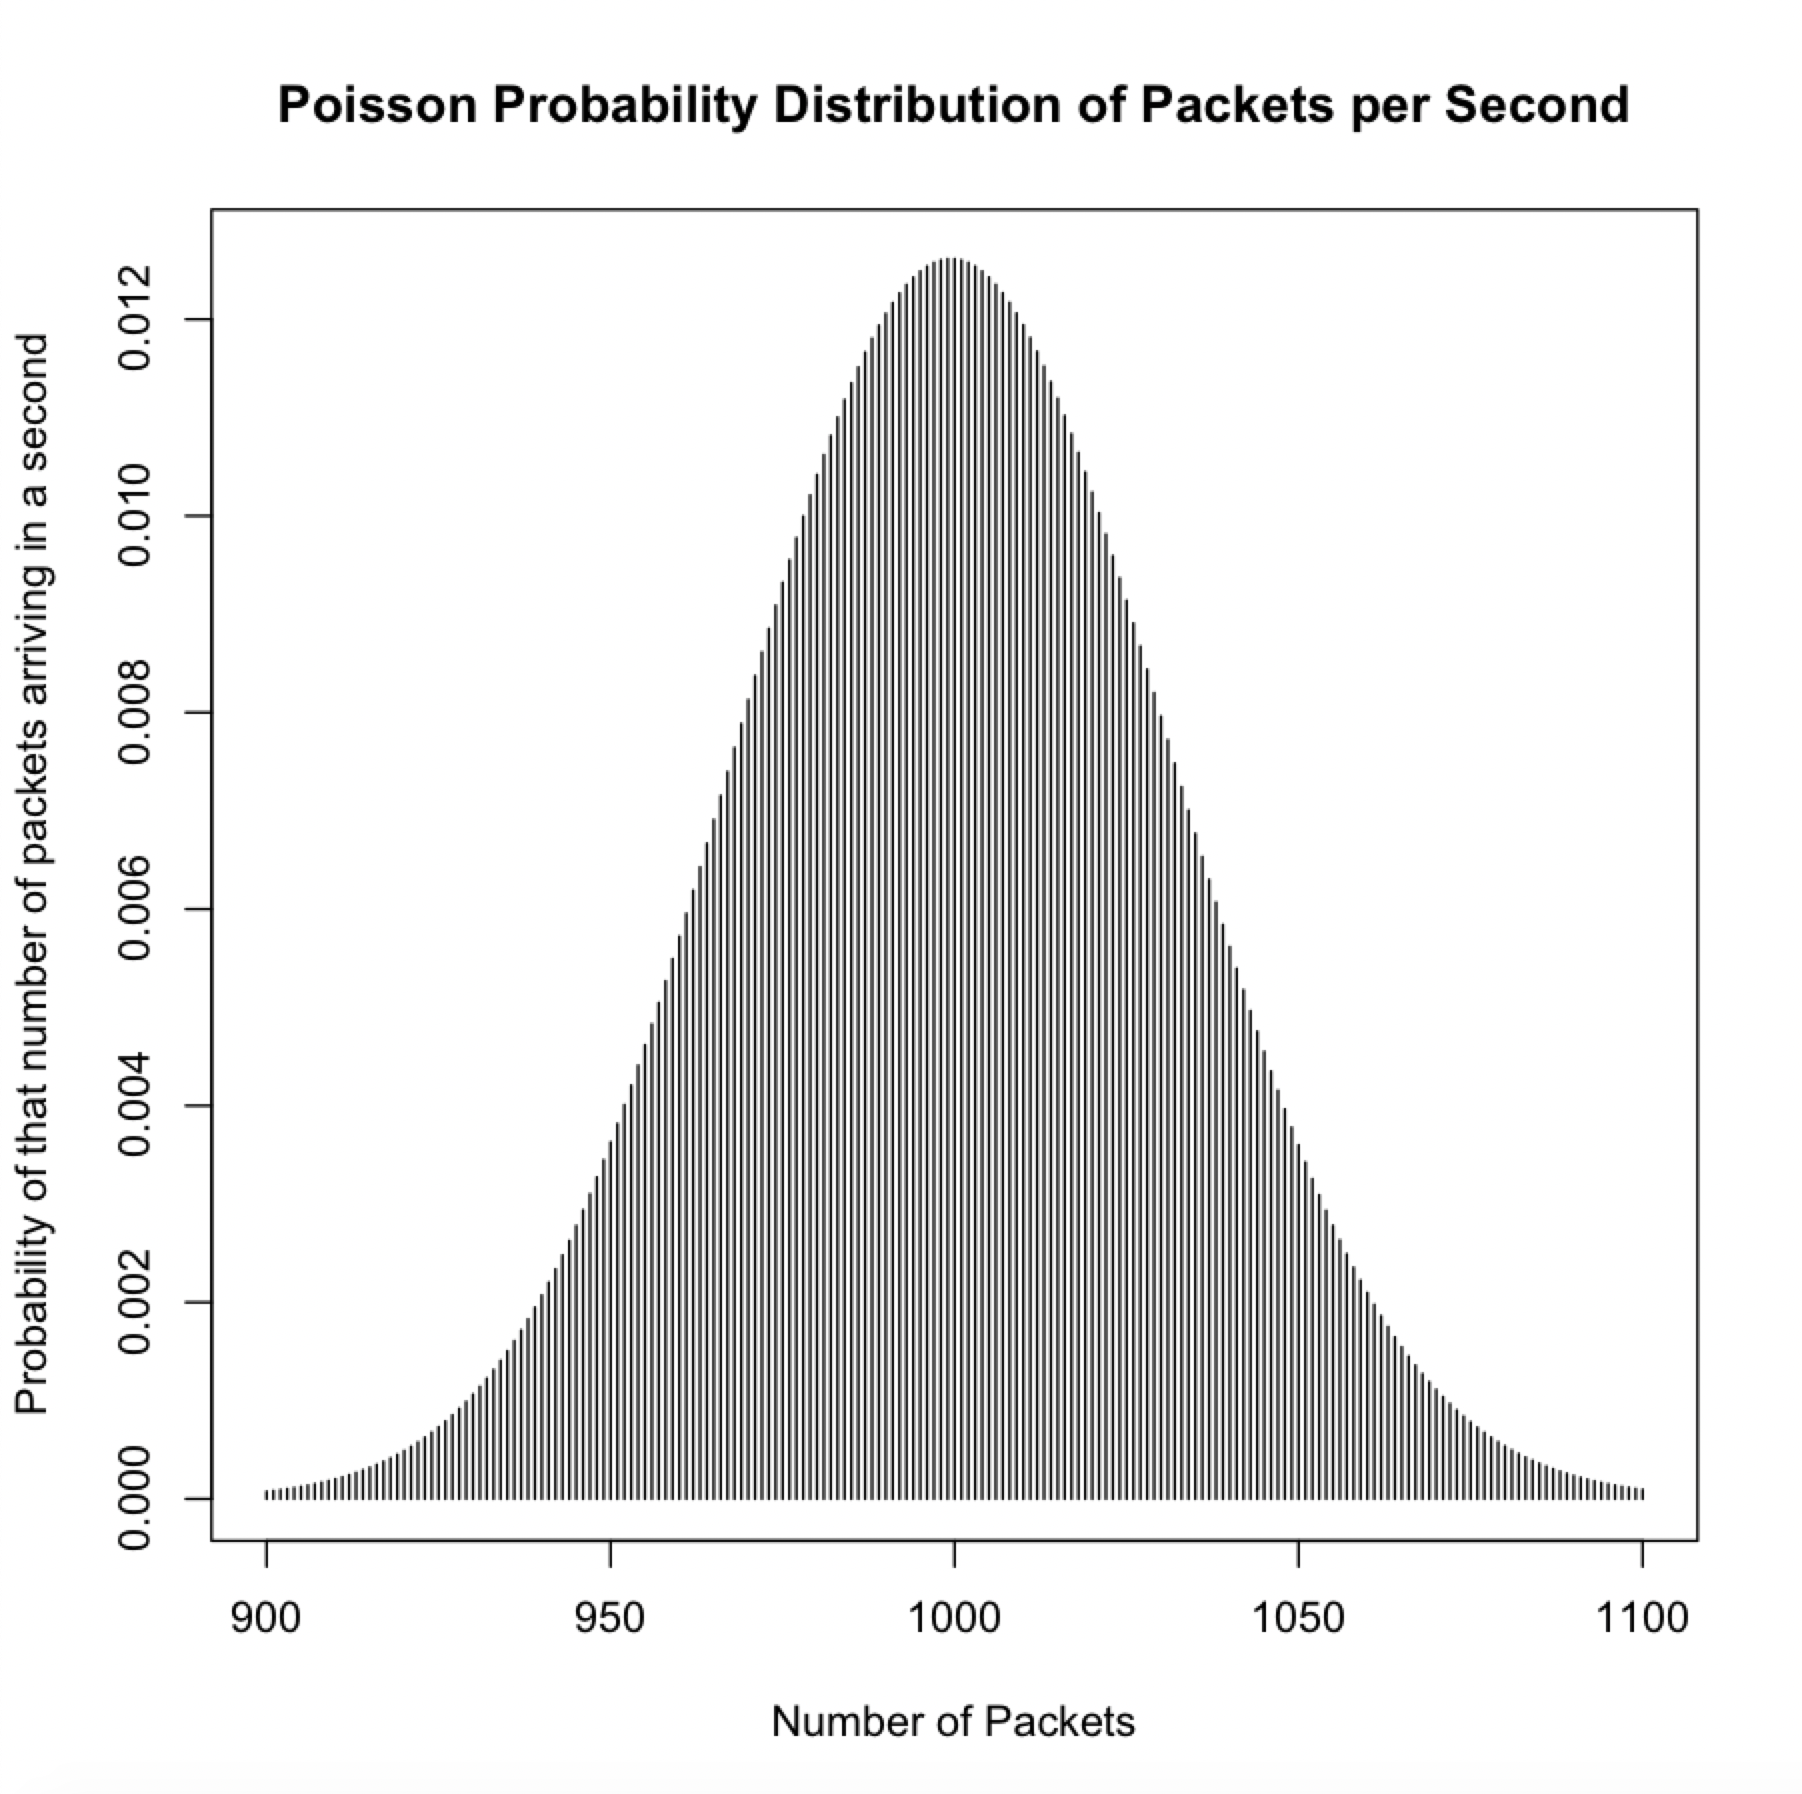 Picture of a Poisson probability distribution with average of 1000 packets per second.  It looks like of like a bell curve around 1000. The probabilities around 1000 are about 1.2% with the probabilities decreasing as you go above or below 1000. At 900 and 1100 they are close to 0.